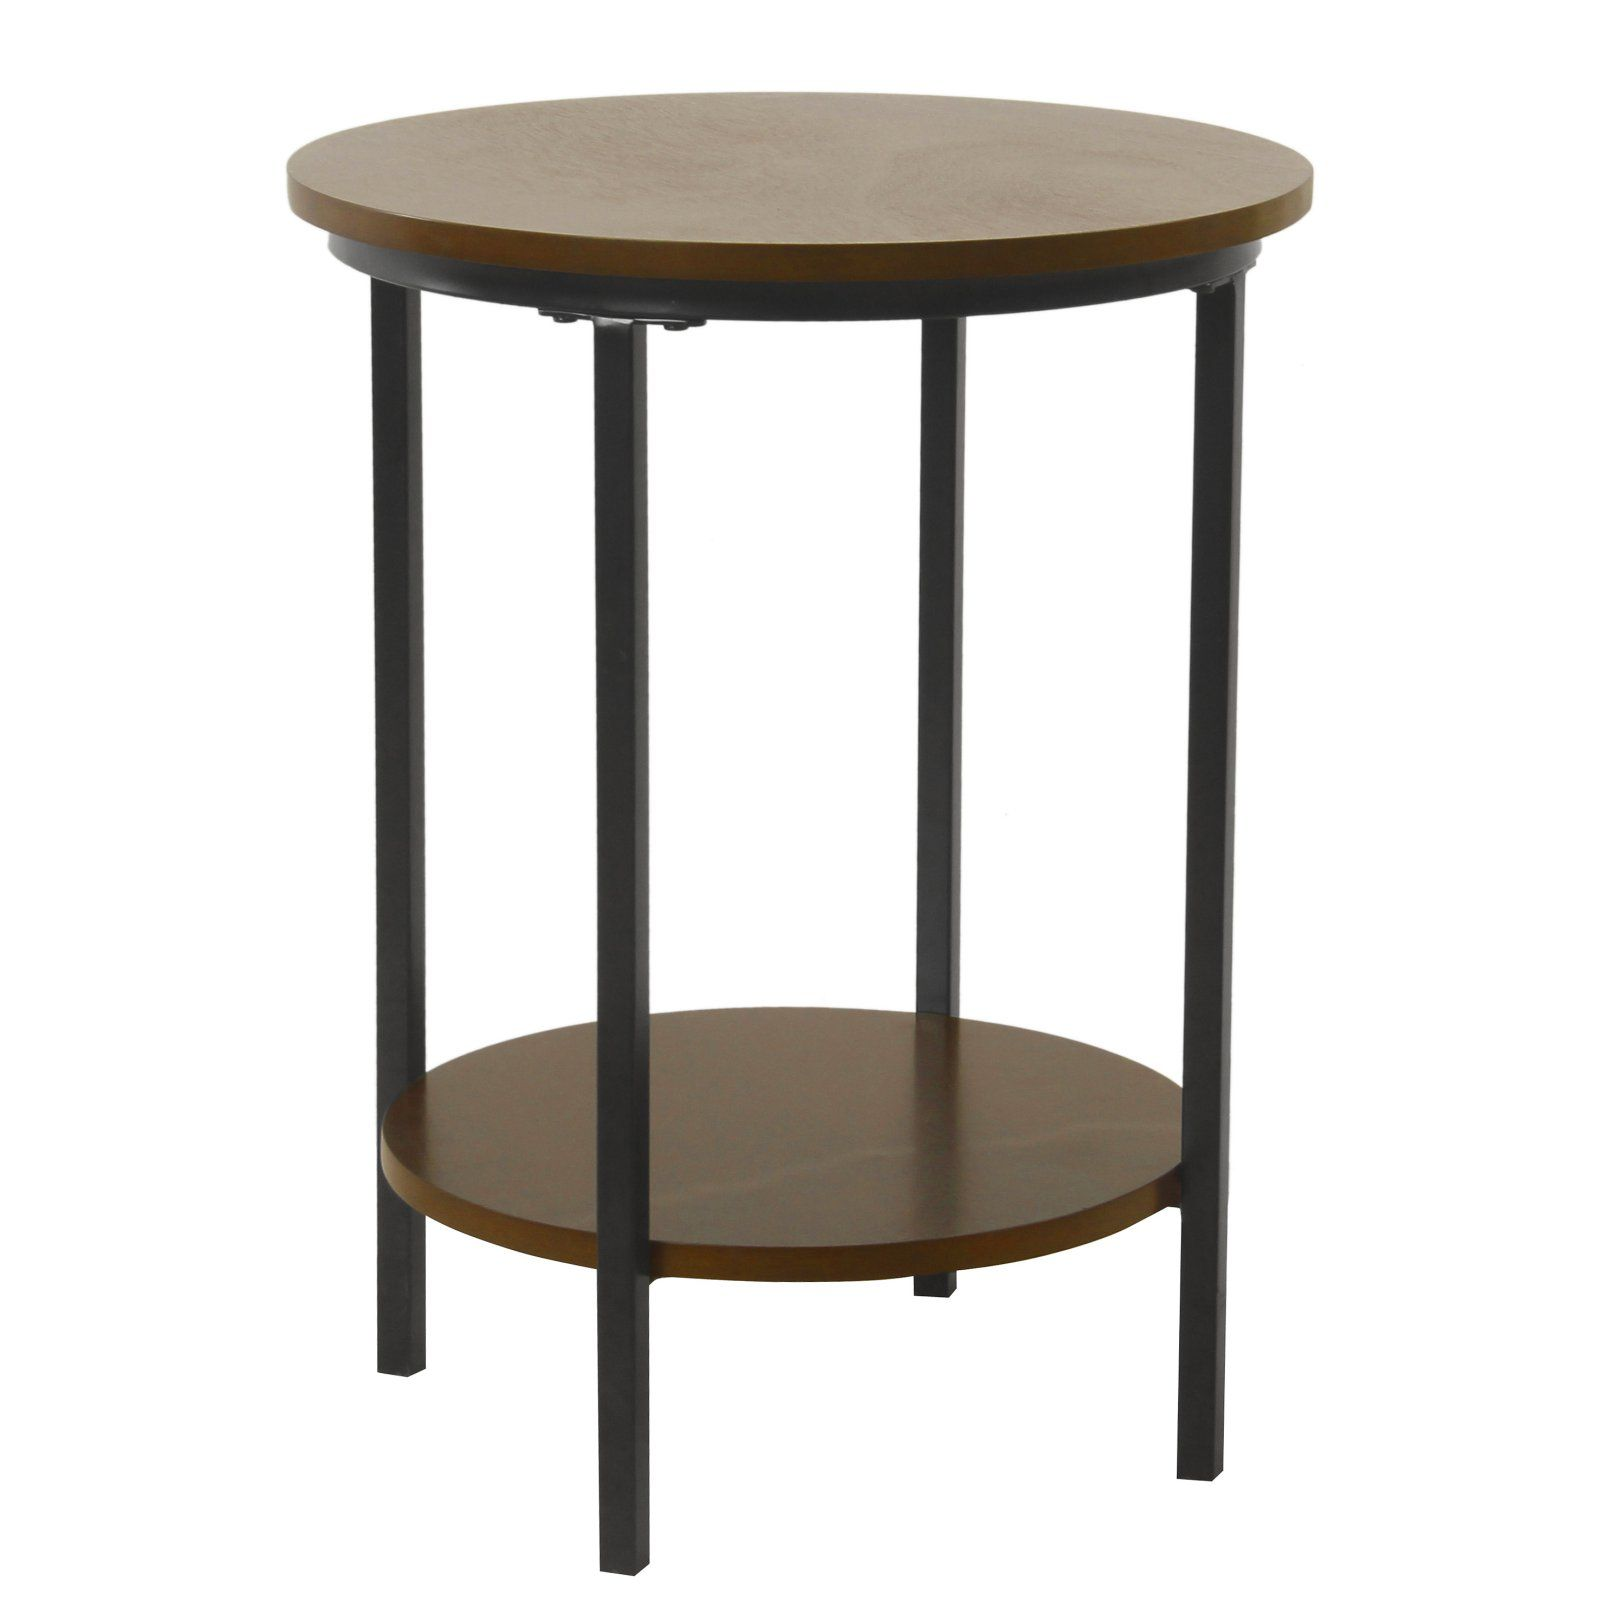 Homepop Round Wood Accent Table With Shelf Storage Round Wood